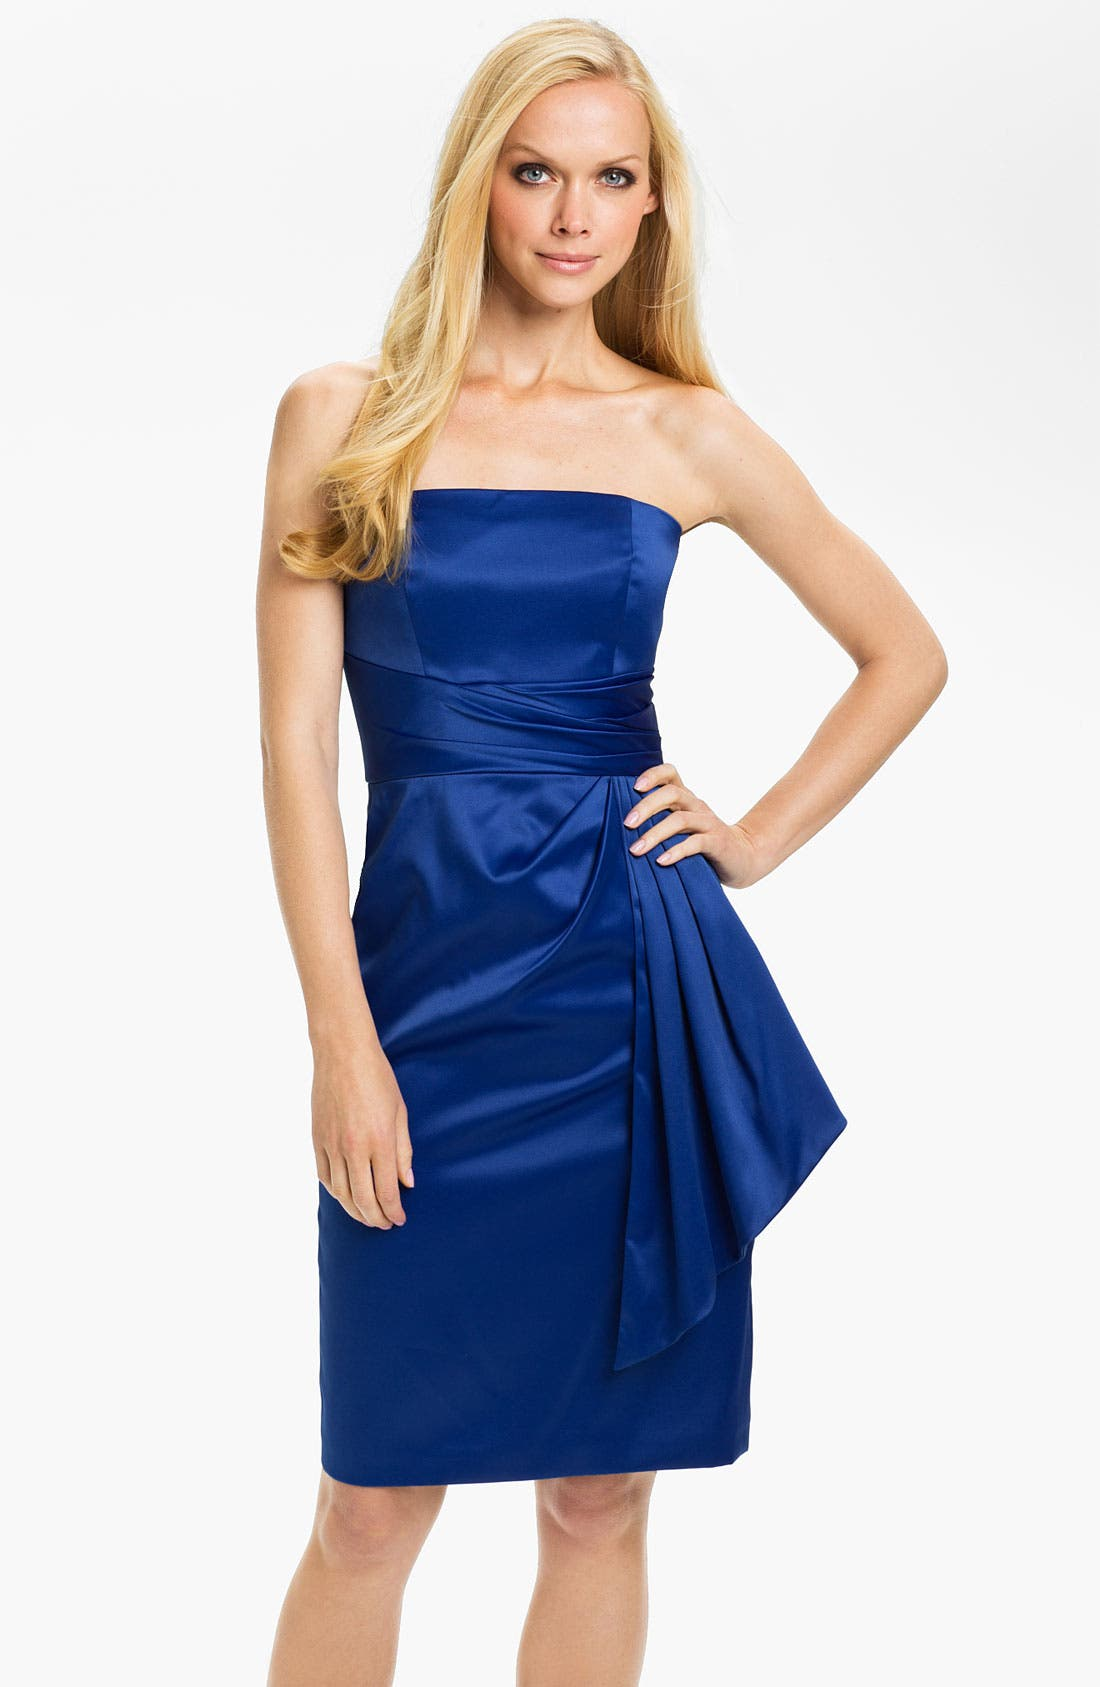 Alternate Image 1 Selected - ML Monique Lhuillier Bridesmaids Strapless Side Pleat Dress (Nordstrom Exclusive)